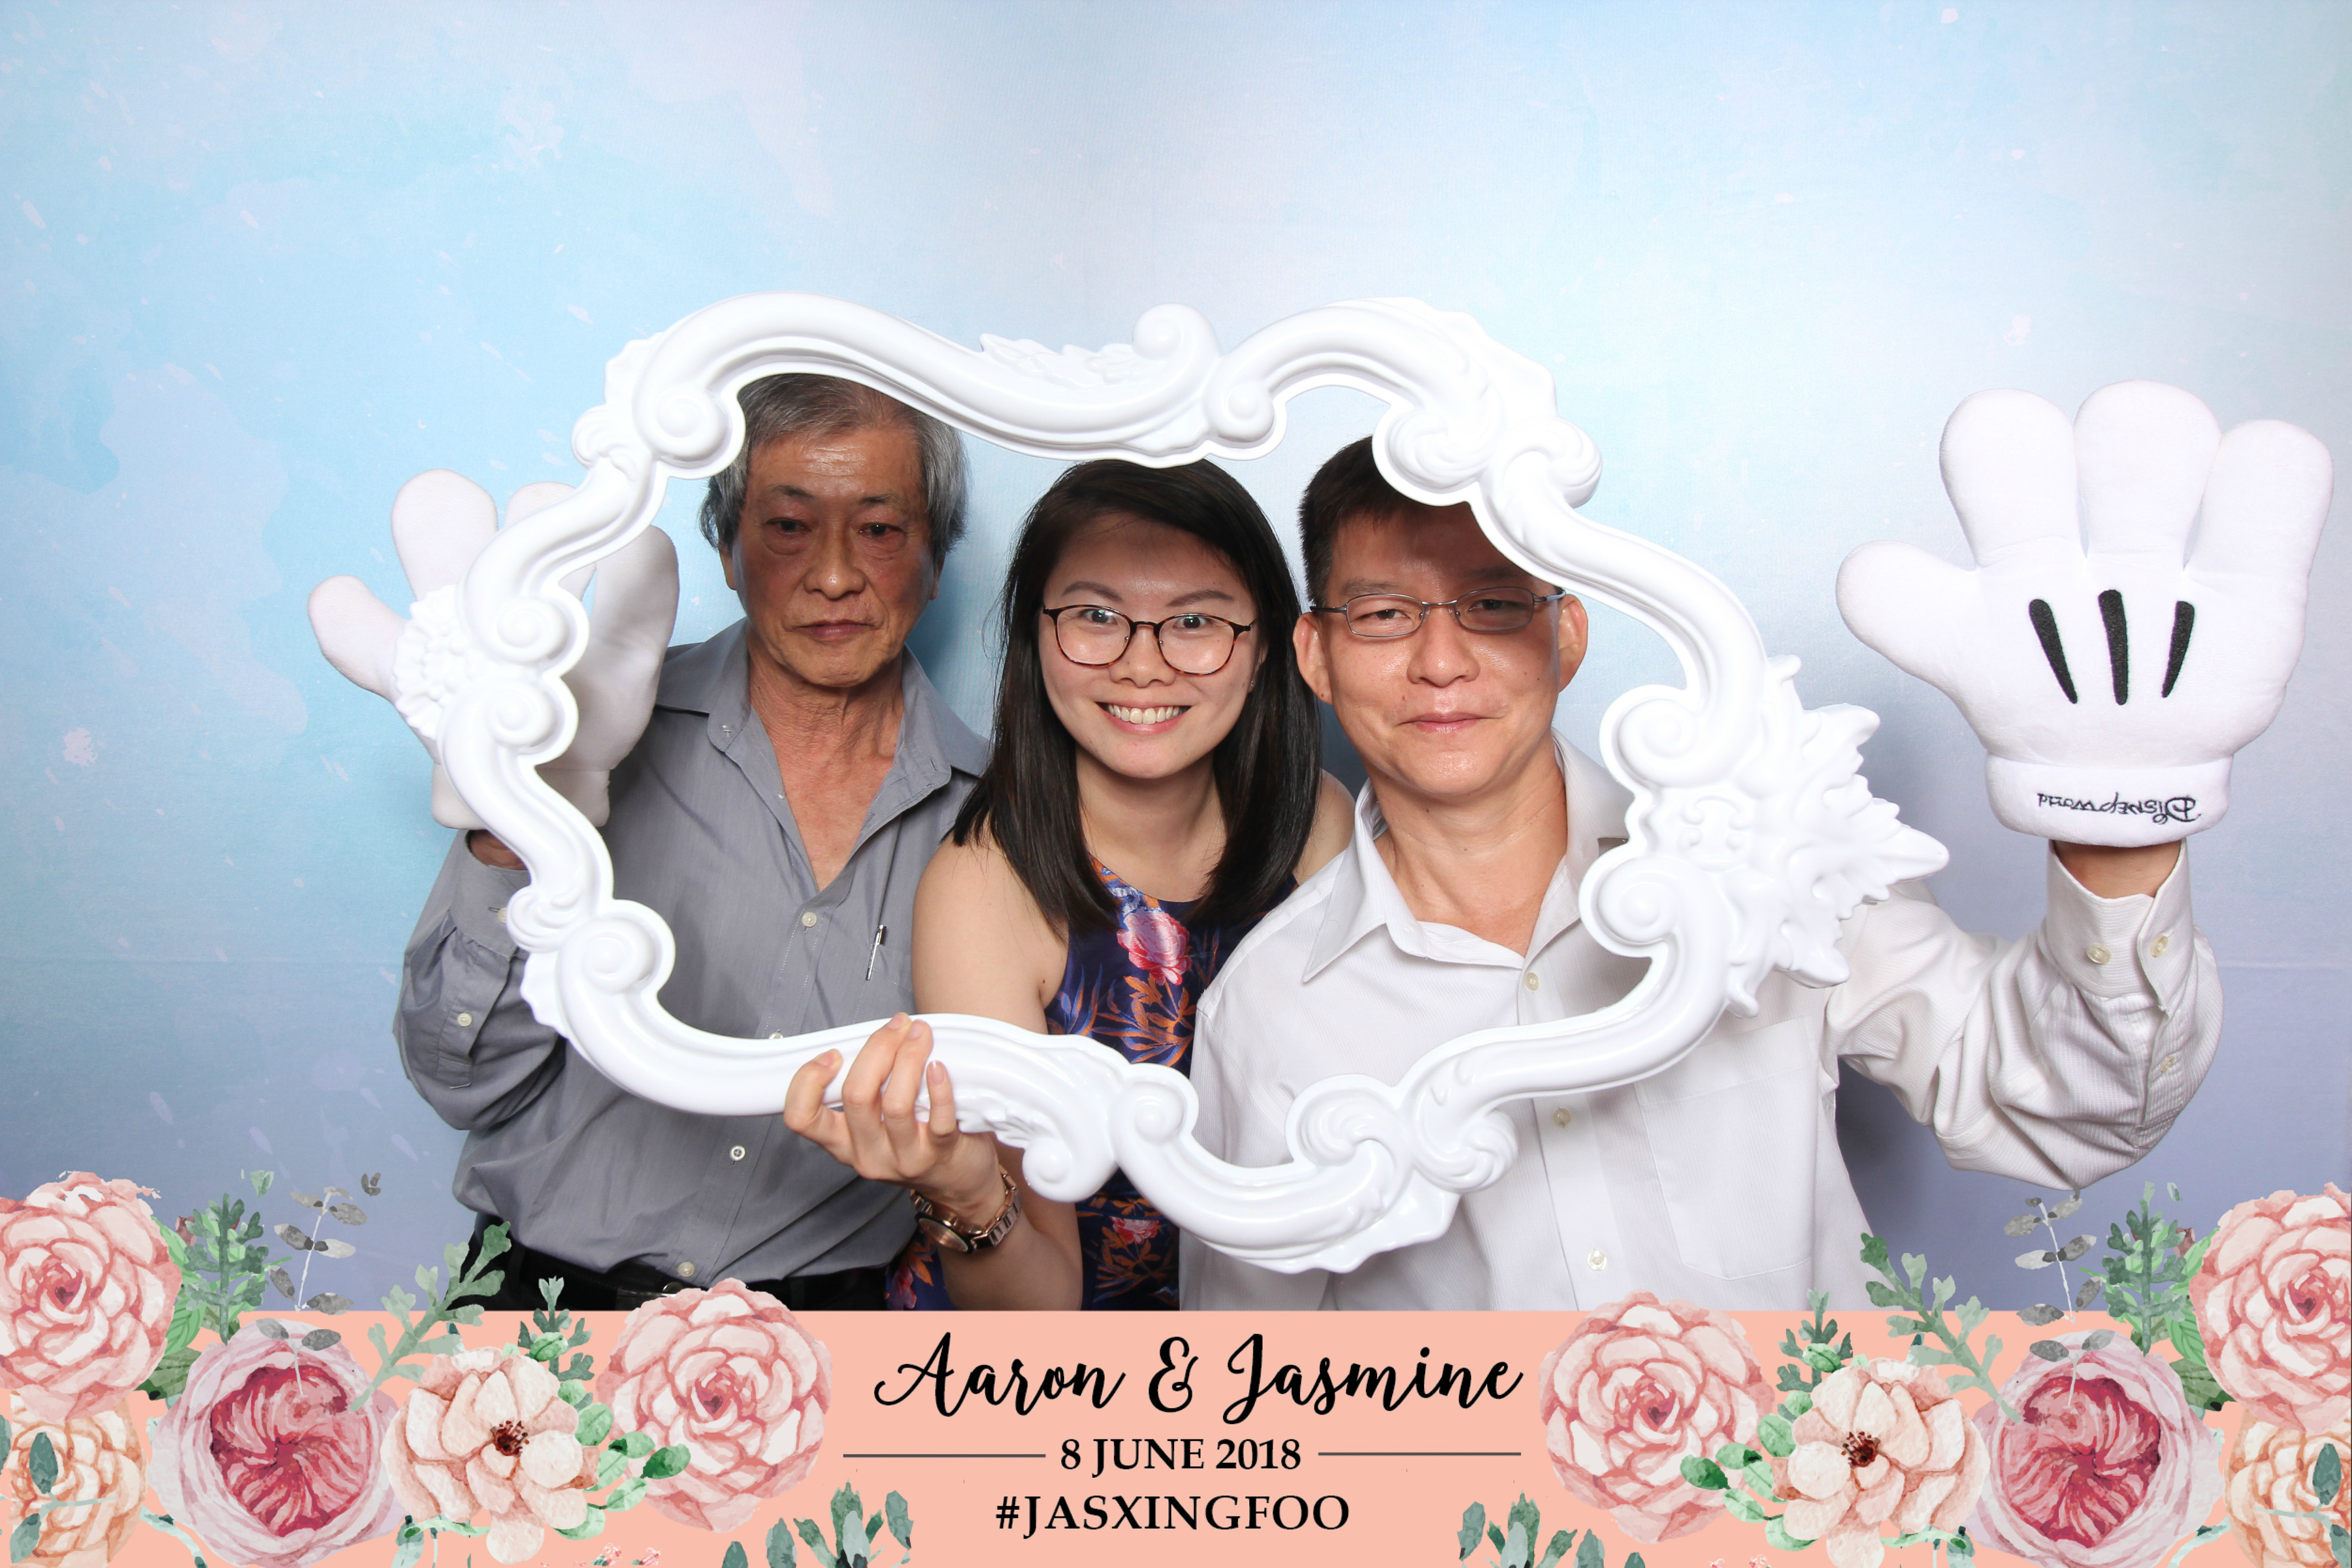 Photobooth 0806-52